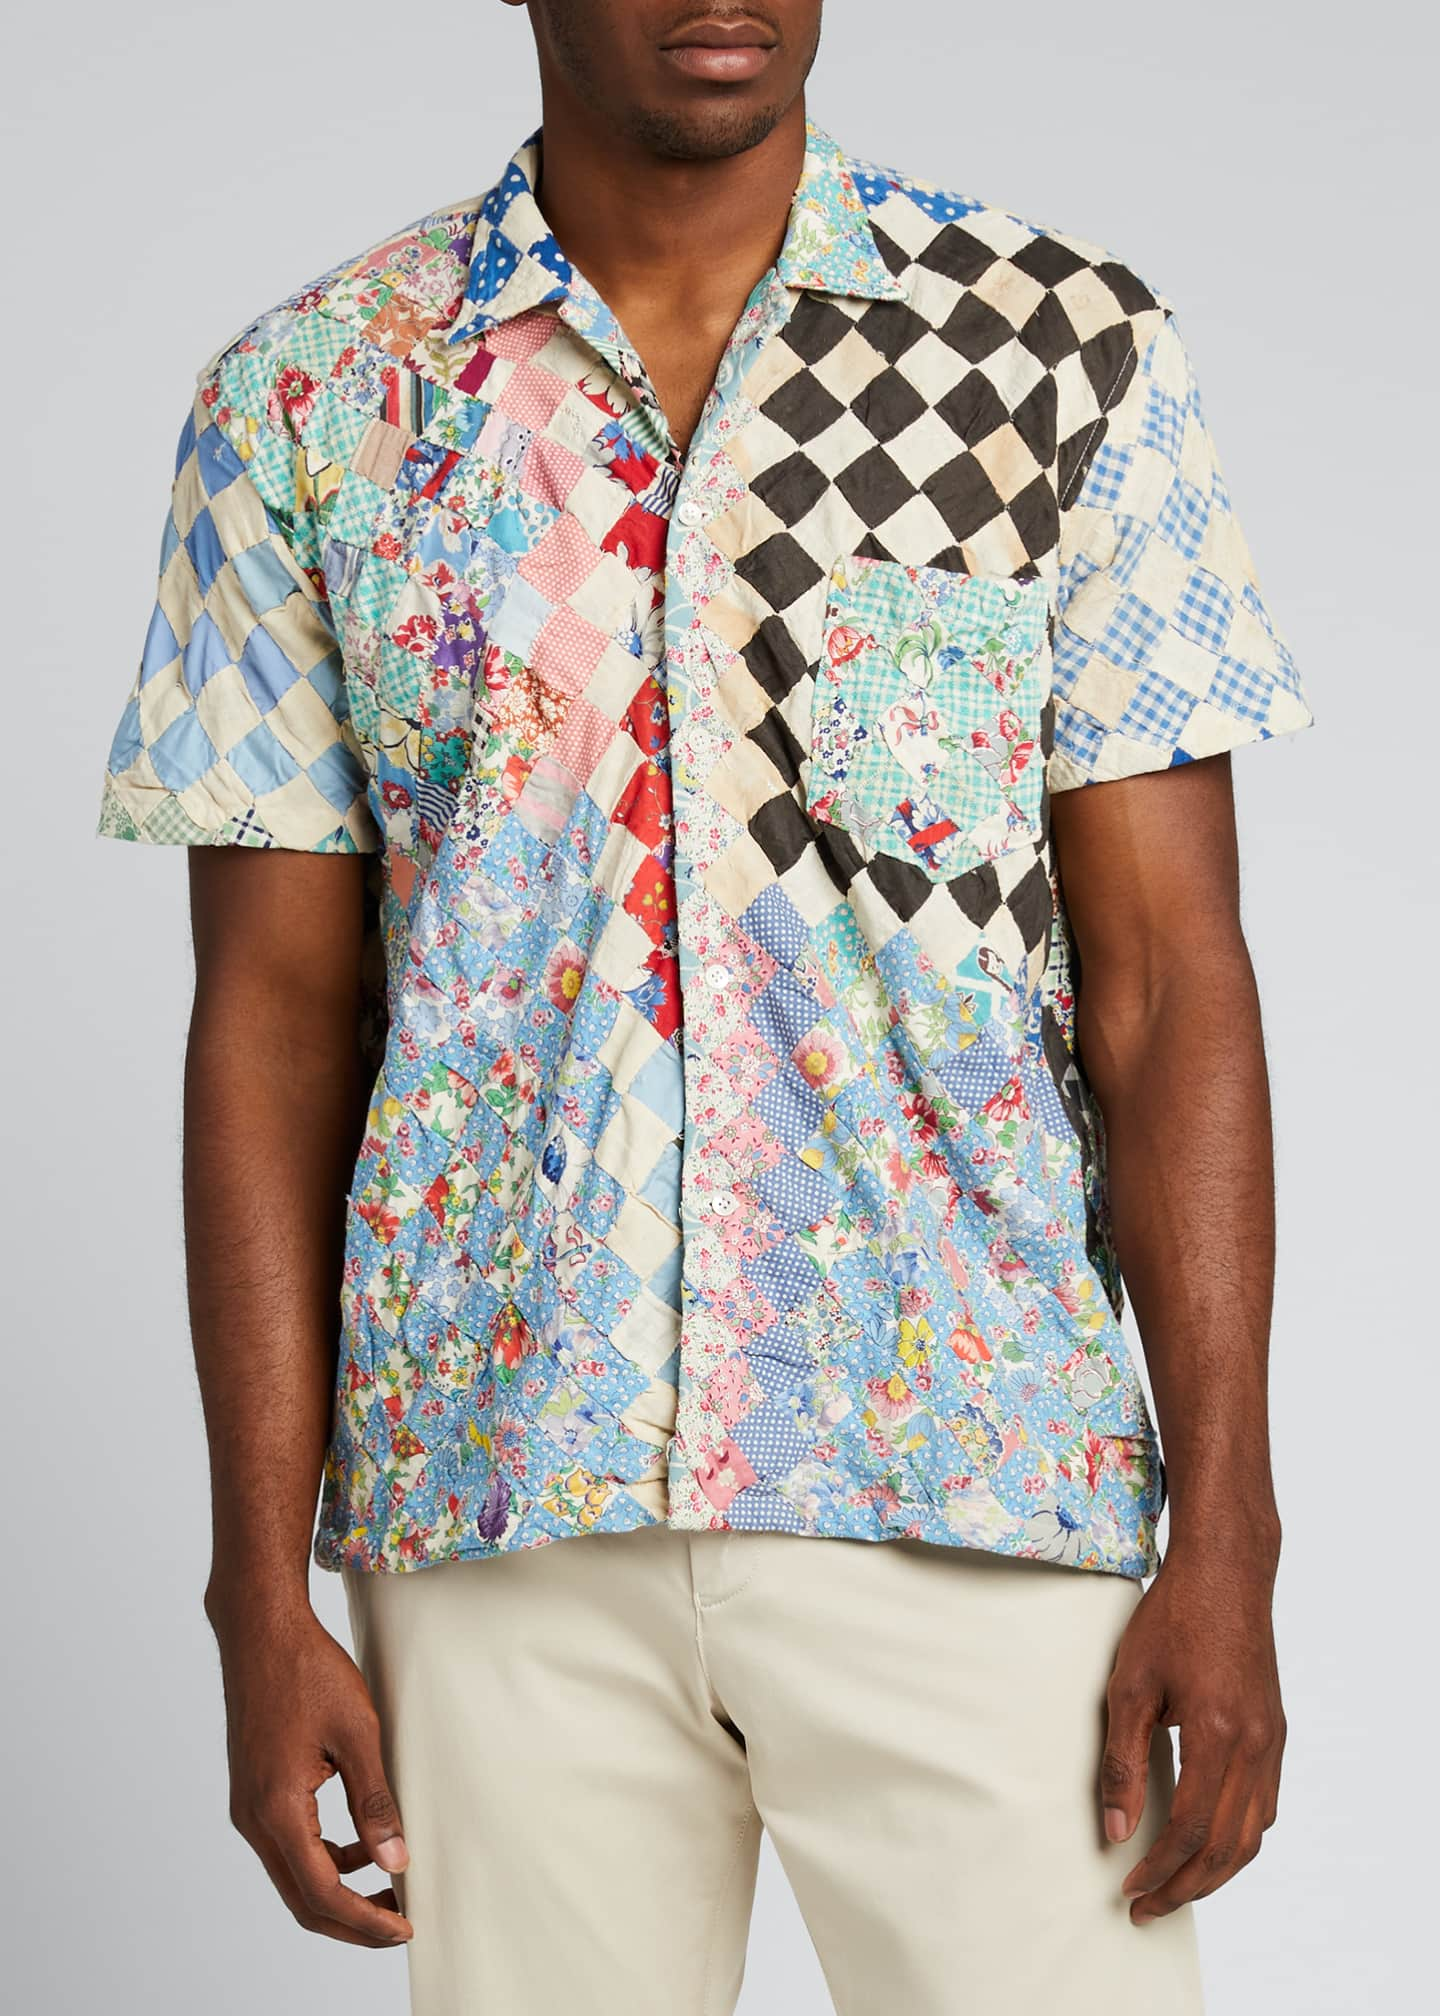 Image 3 of 5: Men's One-of-a-Kind Stamp Quilt Bowling Shirt